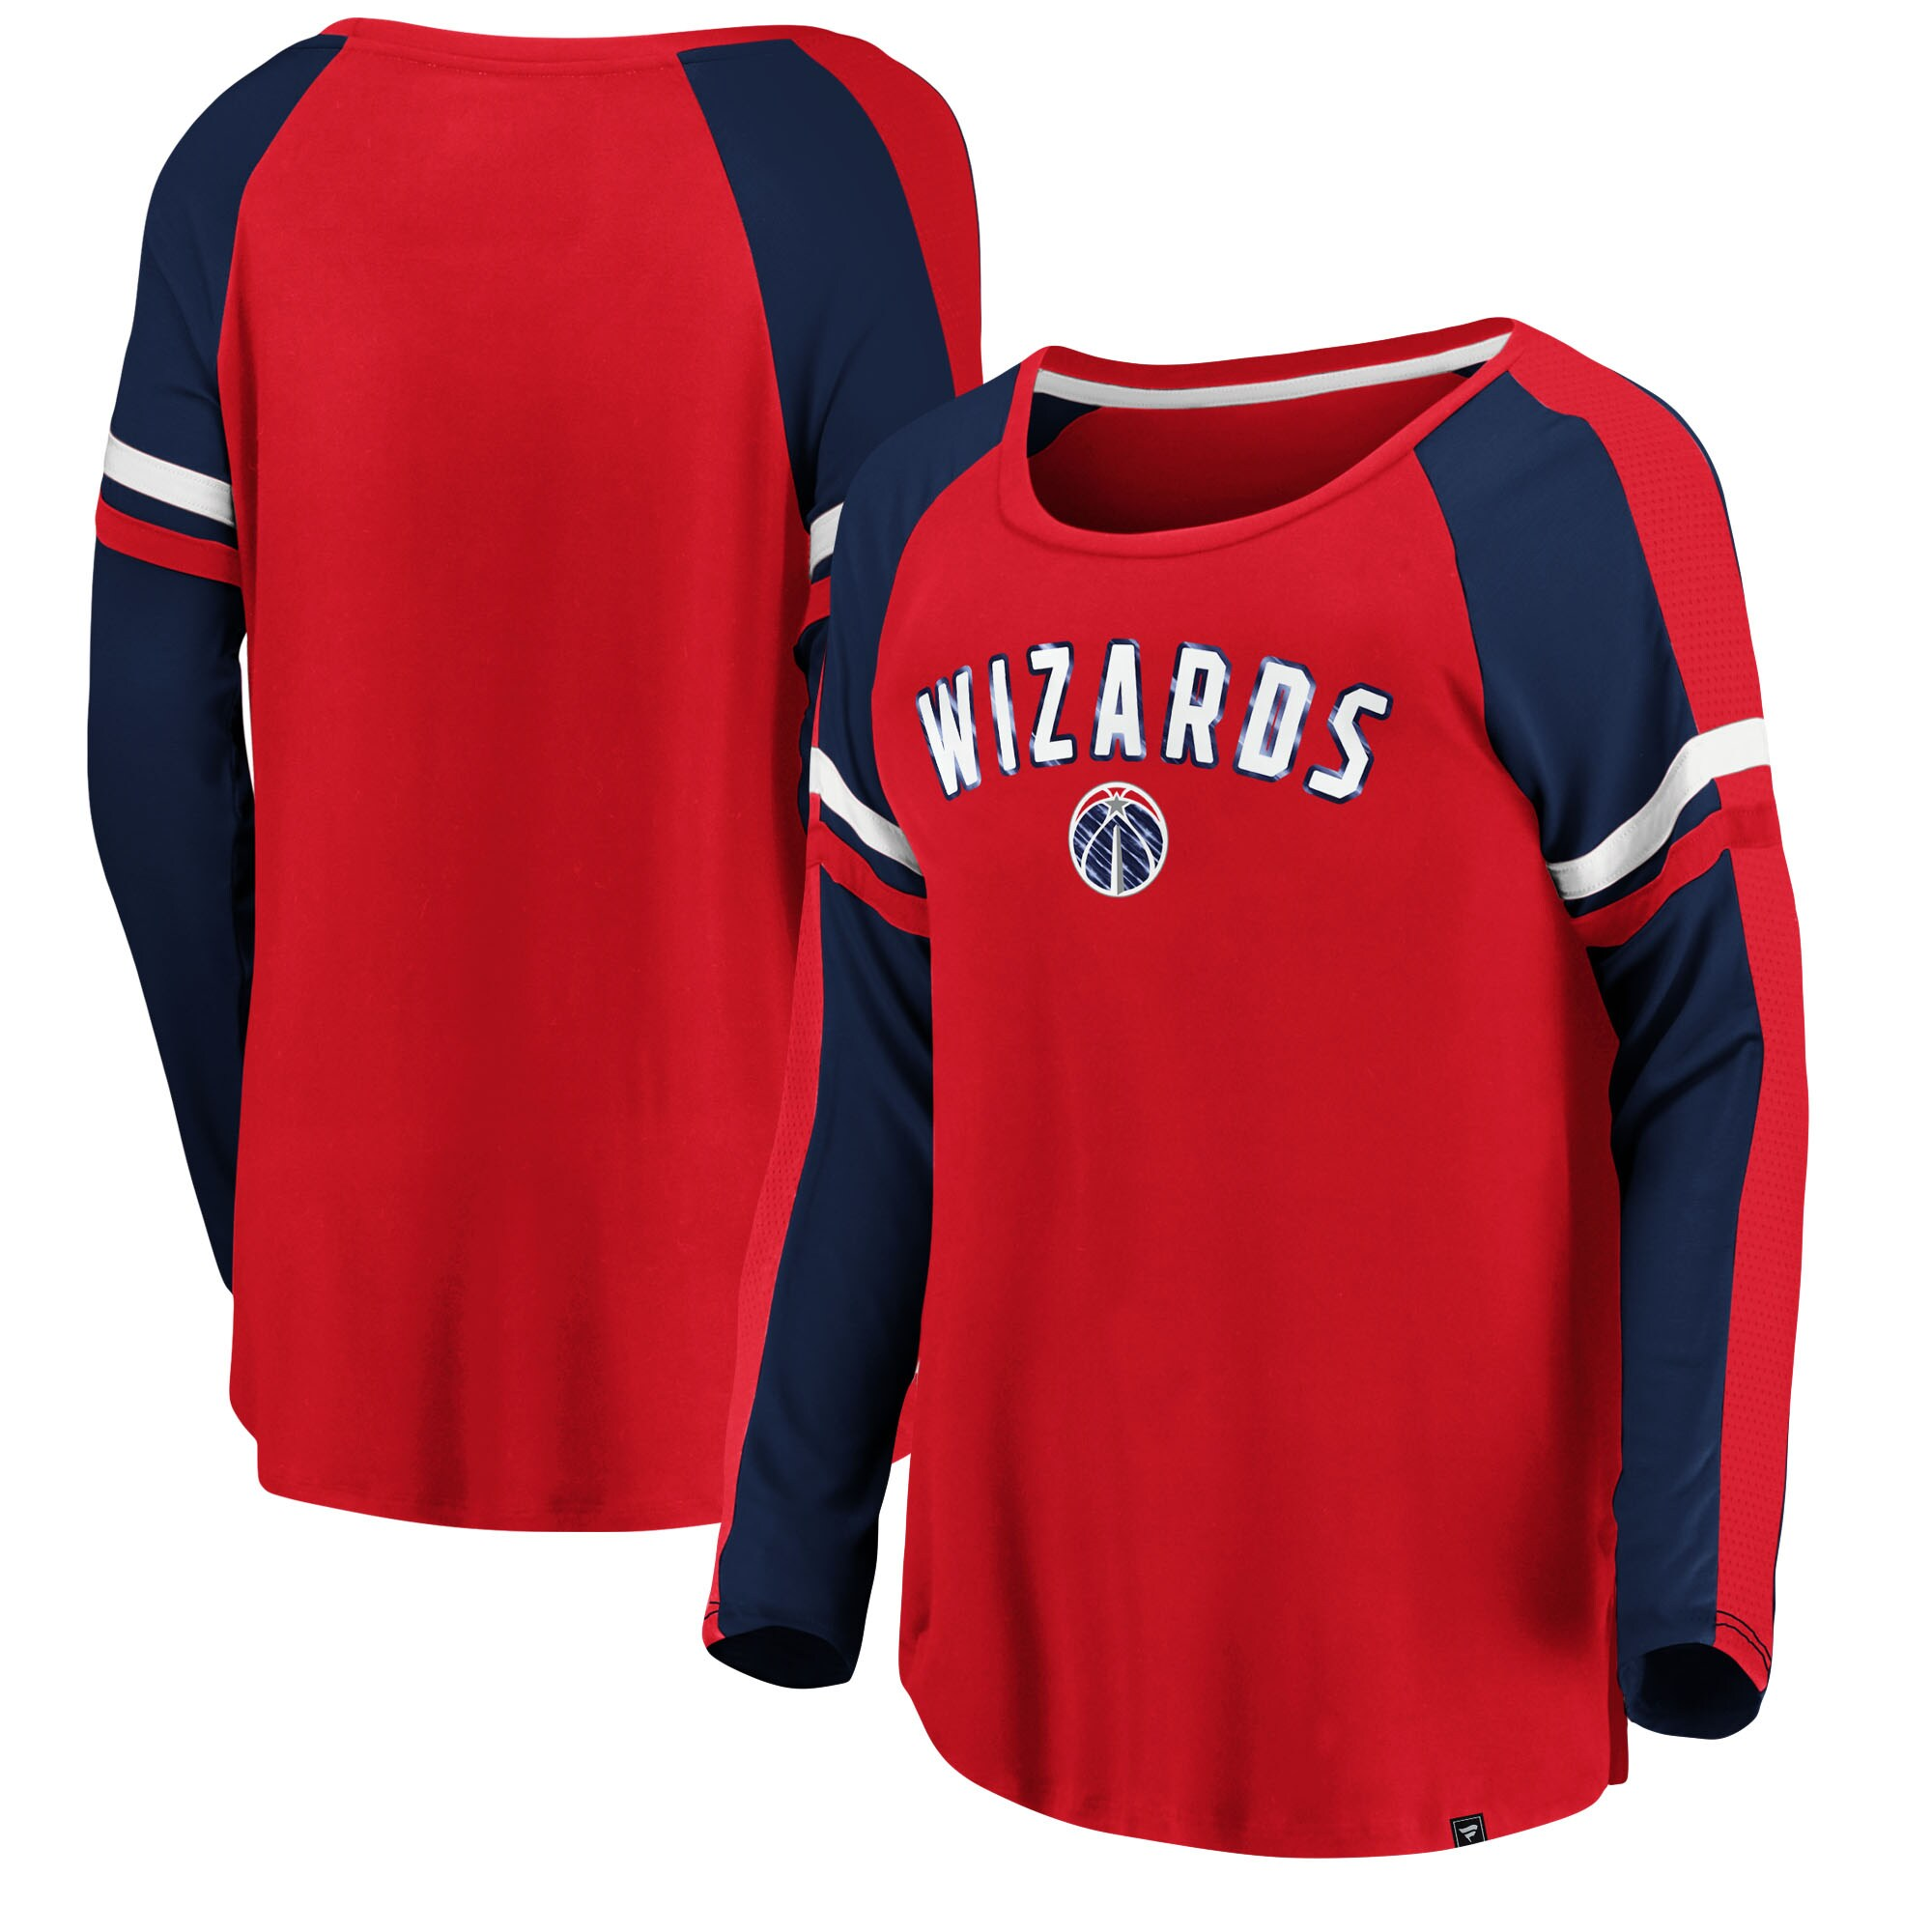 Washington Wizards Fanatics Branded Women's Iconic Flashy Long Sleeve T-Shirt - Red/Navy